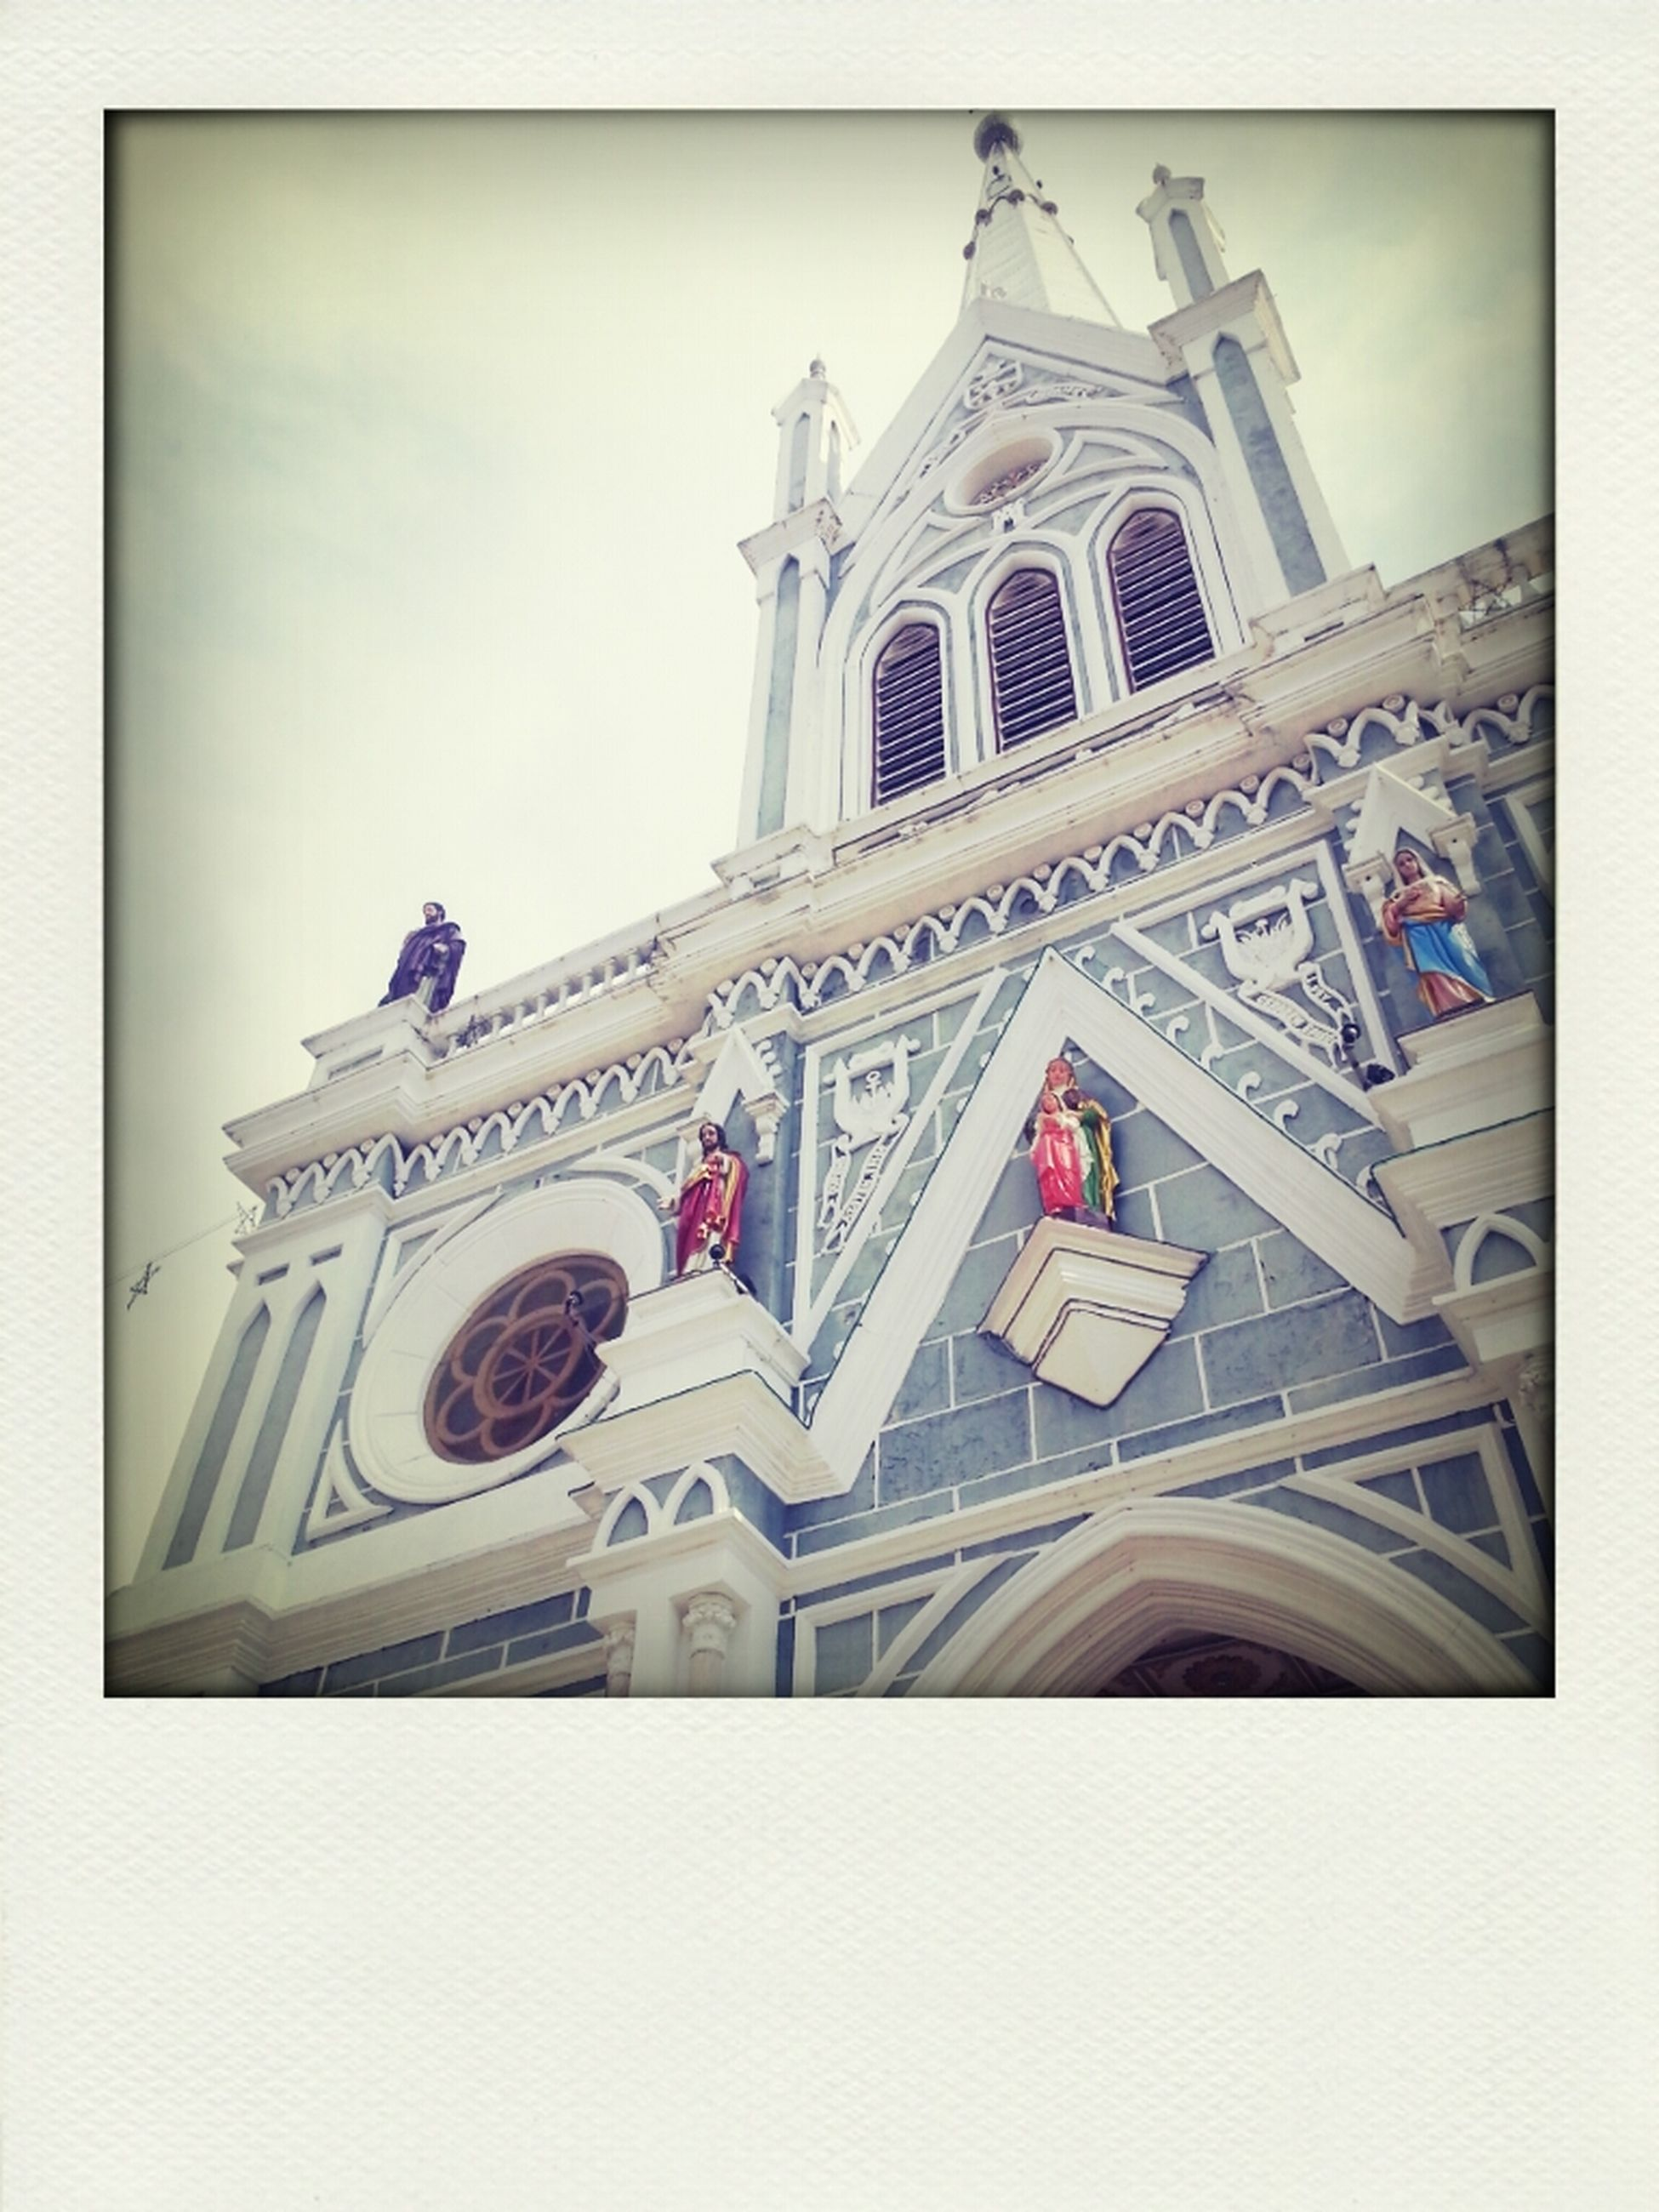 architecture, built structure, building exterior, transfer print, religion, place of worship, low angle view, church, spirituality, cathedral, famous place, auto post production filter, international landmark, travel destinations, capital cities, sky, tower, travel